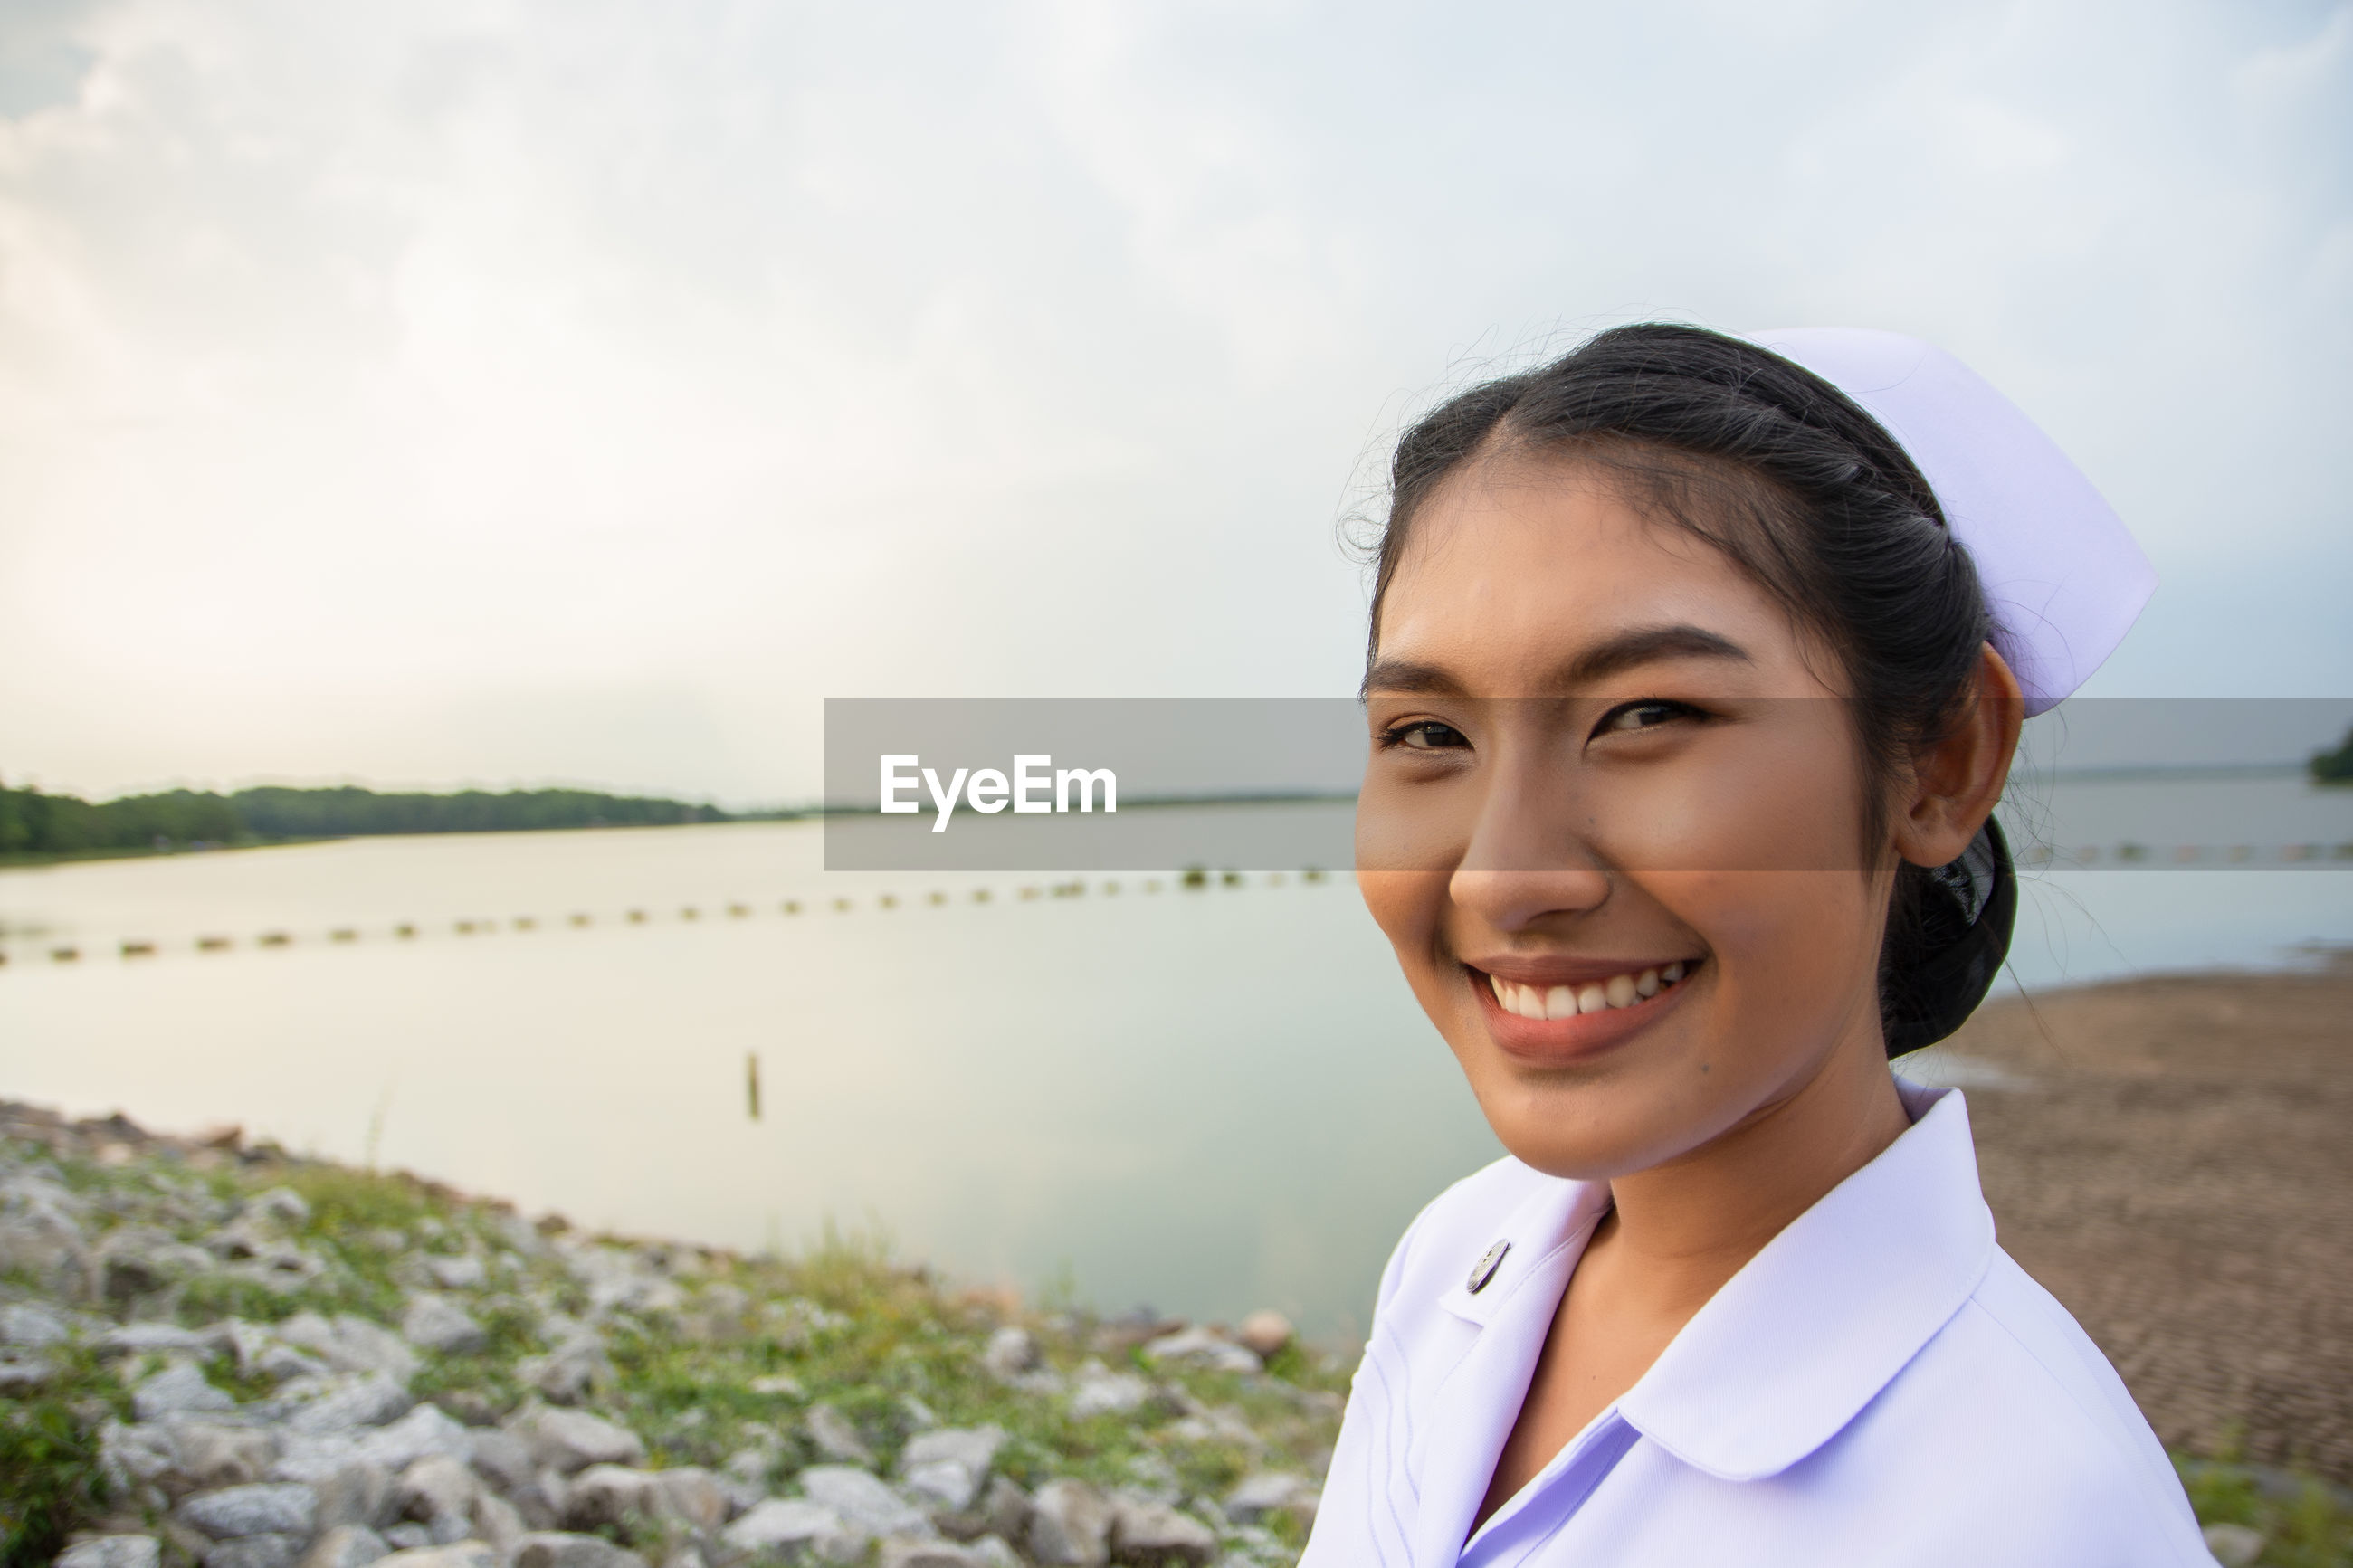 Smiling young nurse on field